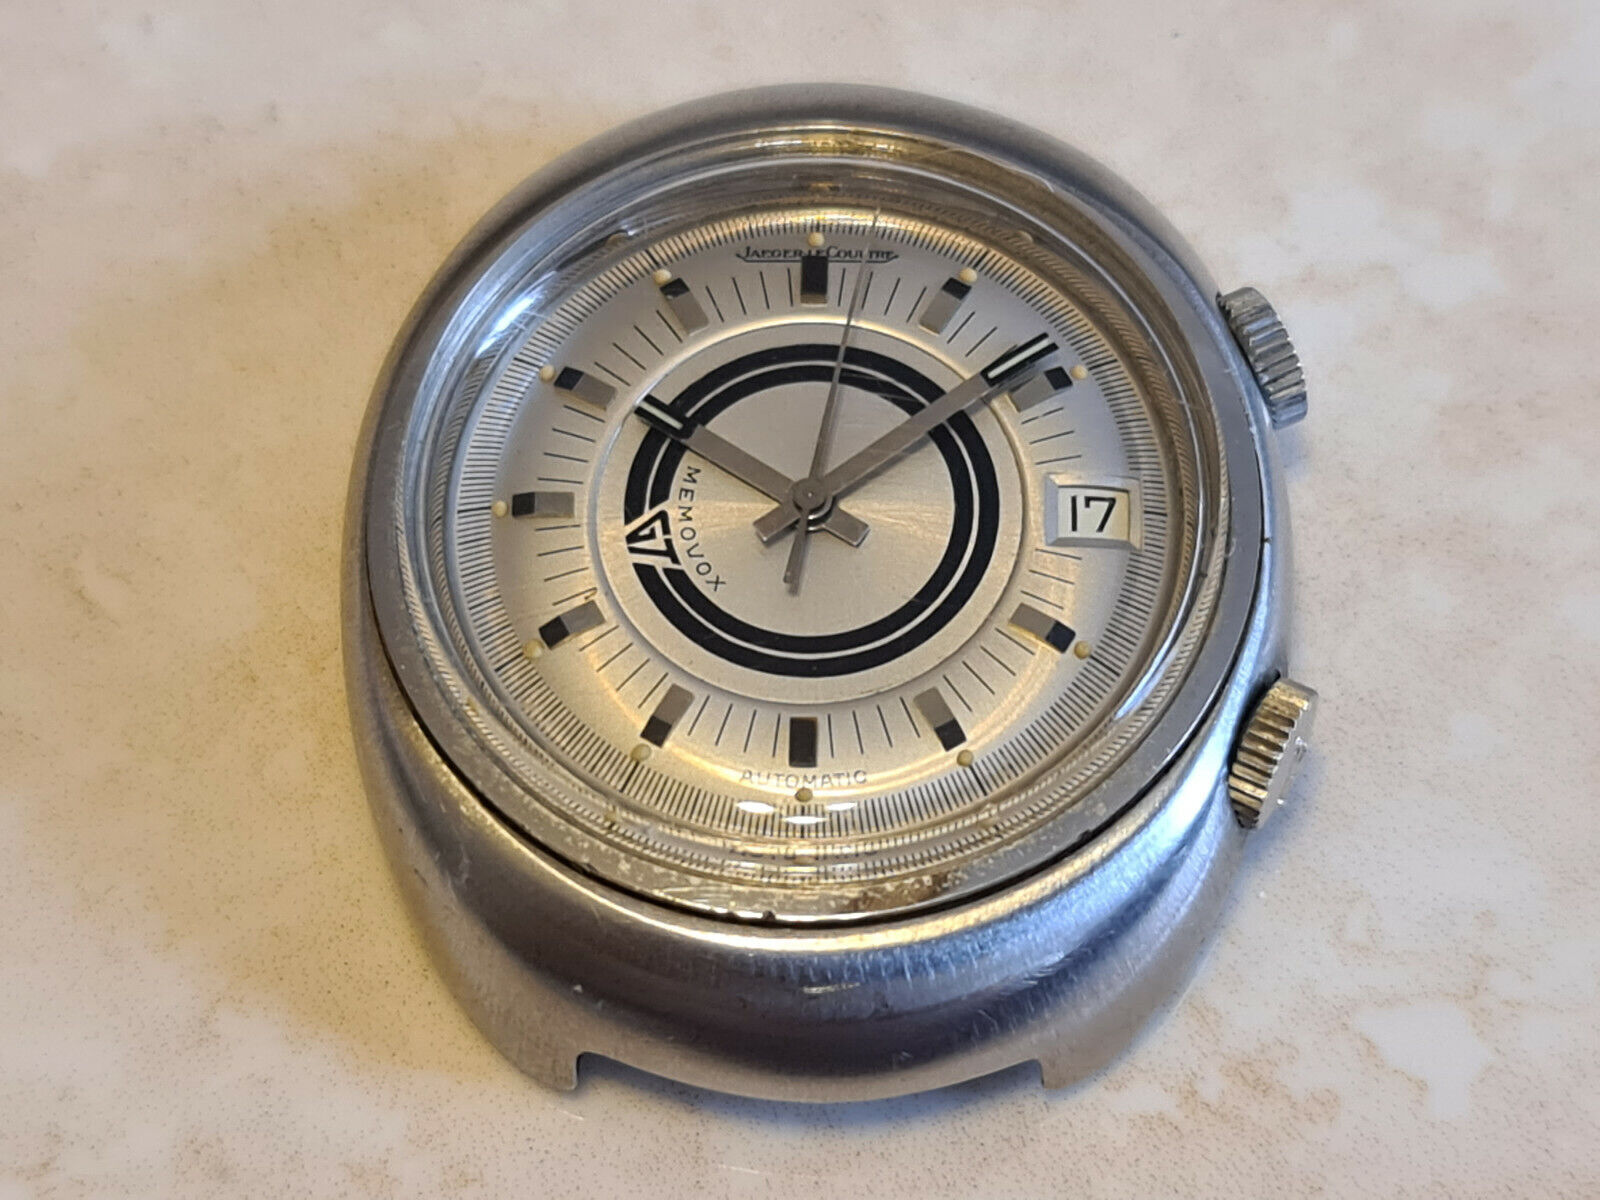 Vintage Jaeger-LeCoultre Memovox GT Automatic Alarmwatch E861 - watch picture 1